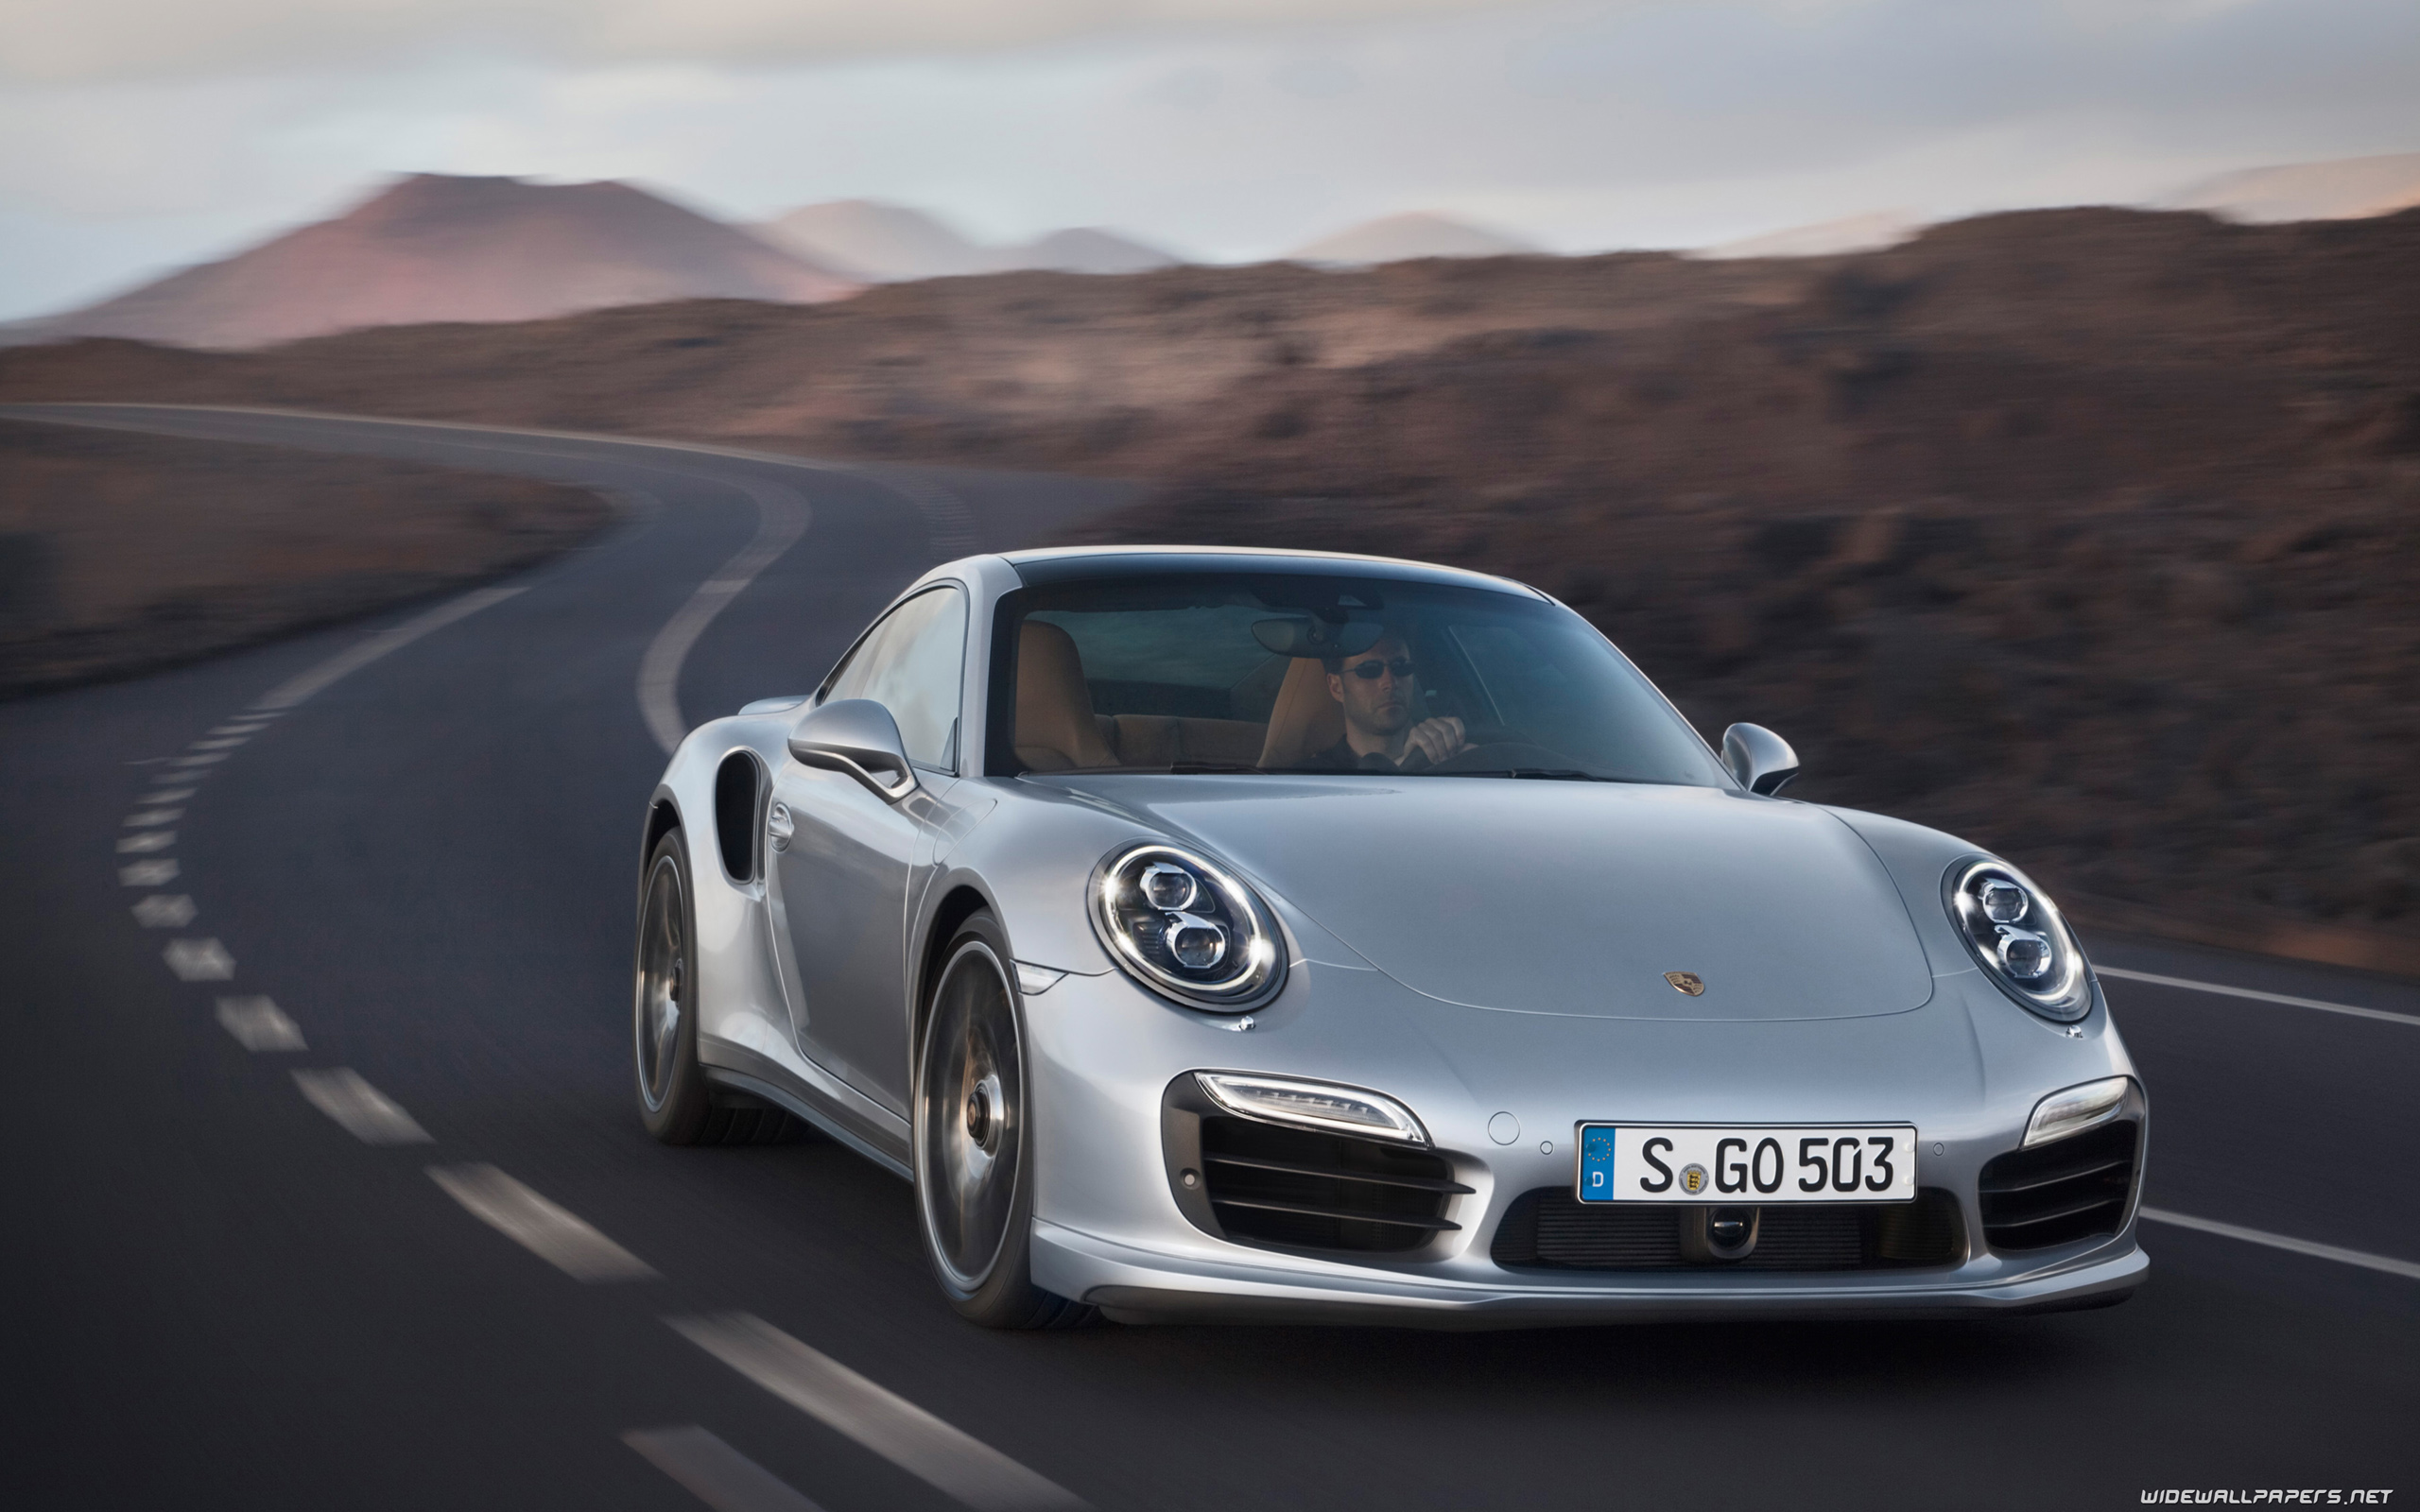 wallpapers 4k ultra hd porsche 911 turbo s 2560x1440 2560x1600 3840x2160 - Porsche 911 Wallpaper Widescreen